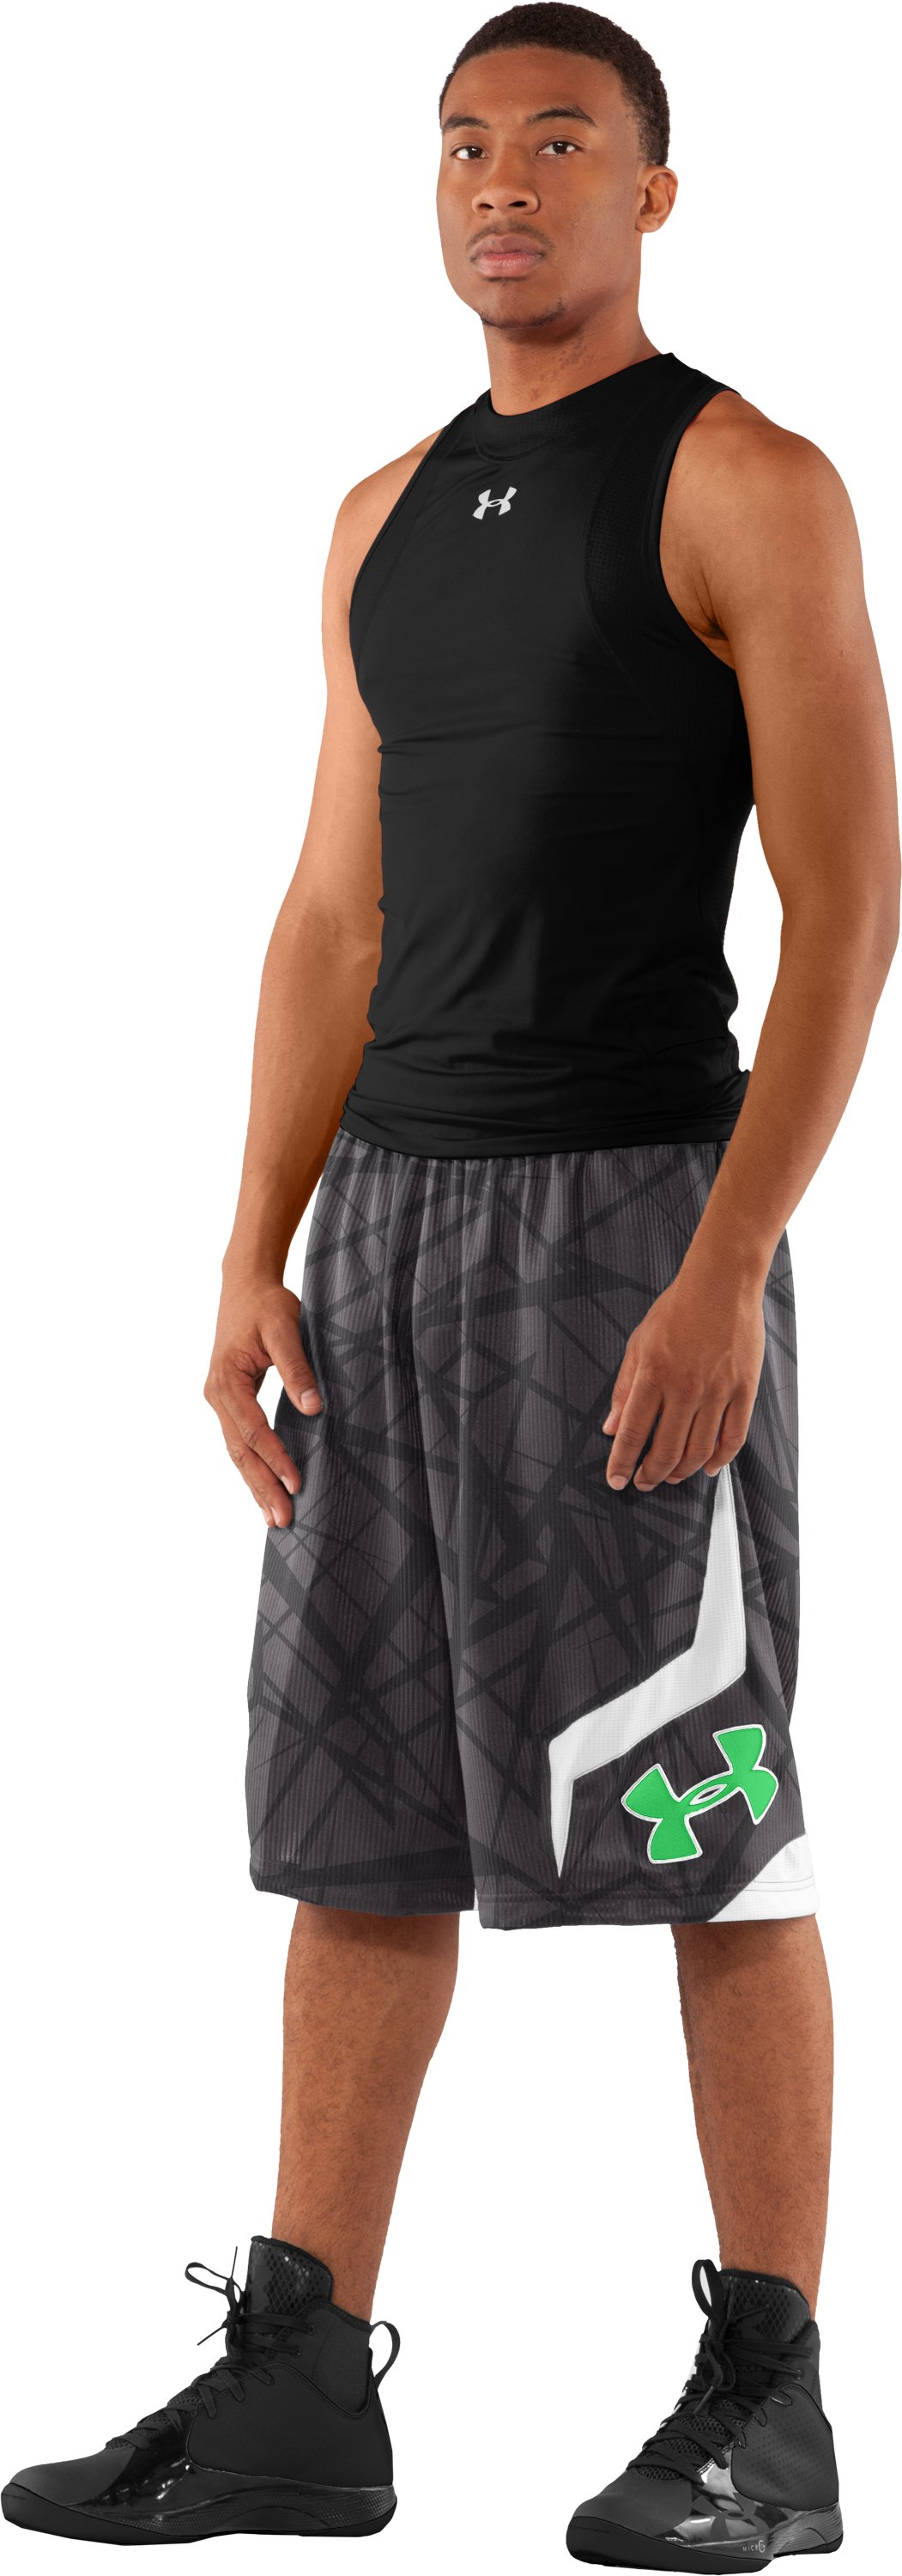 "Men's Printed UA Valkyrie 12"" Basketball Shorts, Charcoal, Front"